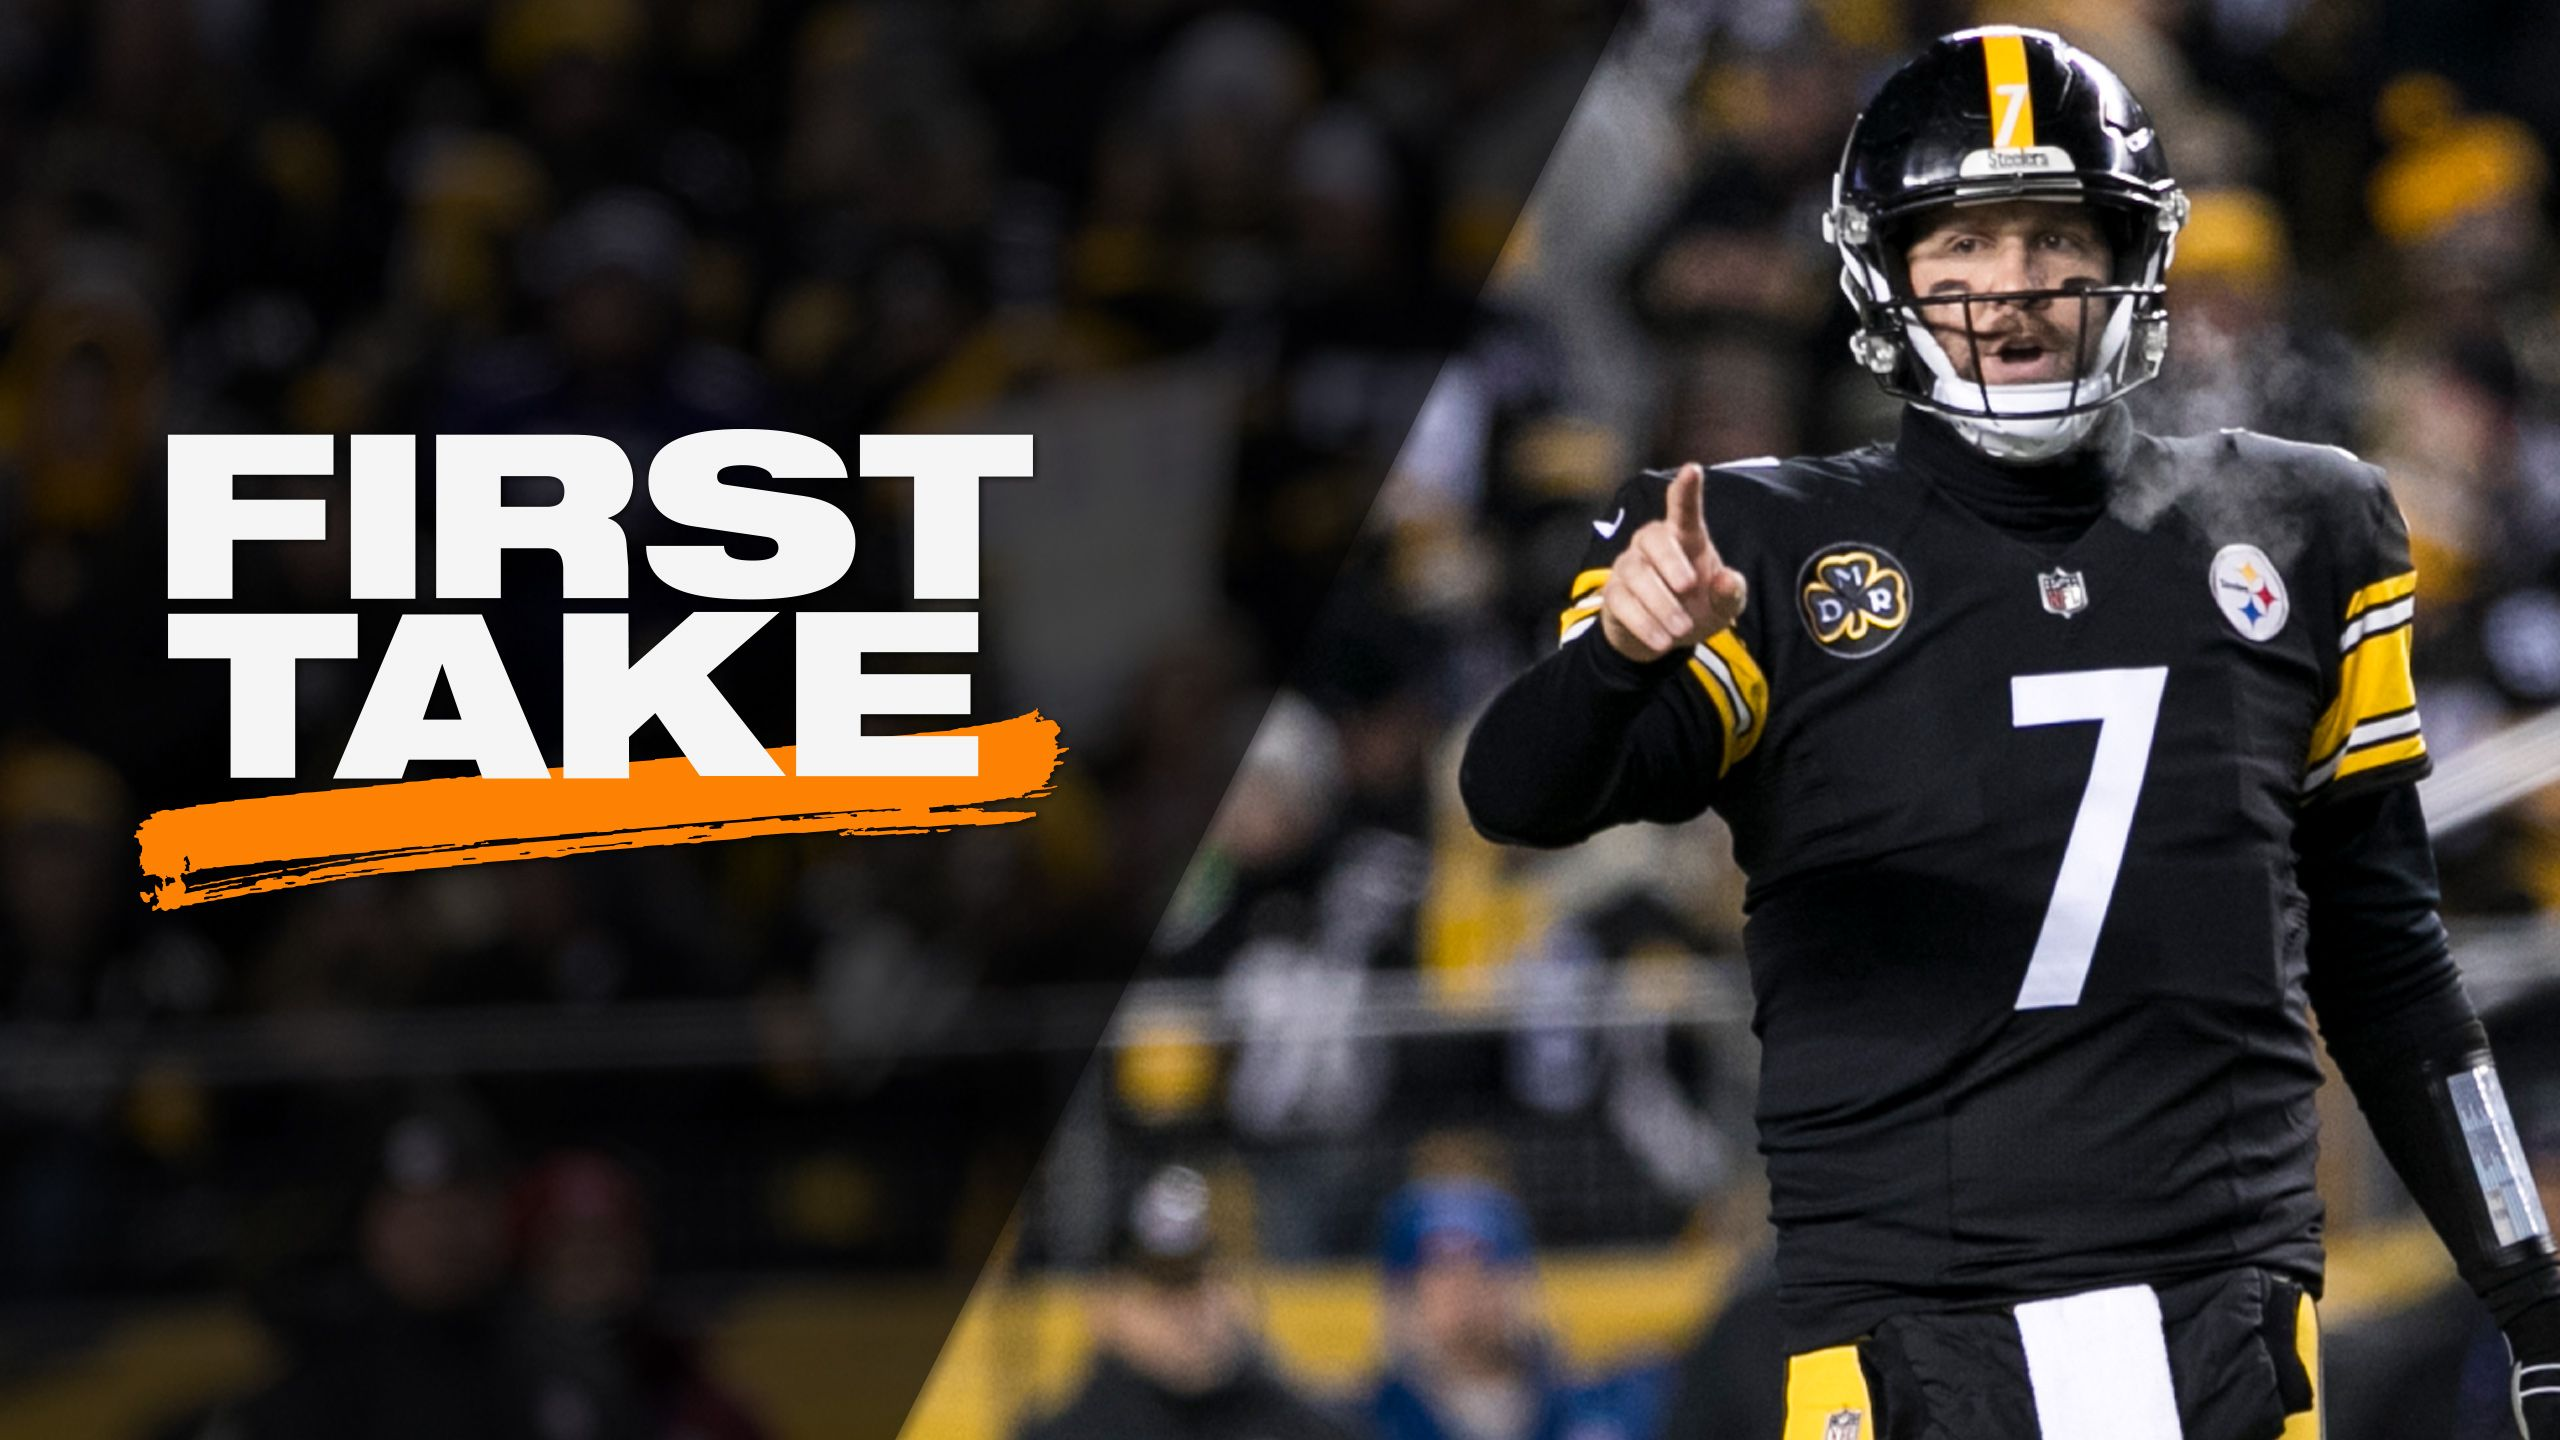 Fri, 12/15 - First Take